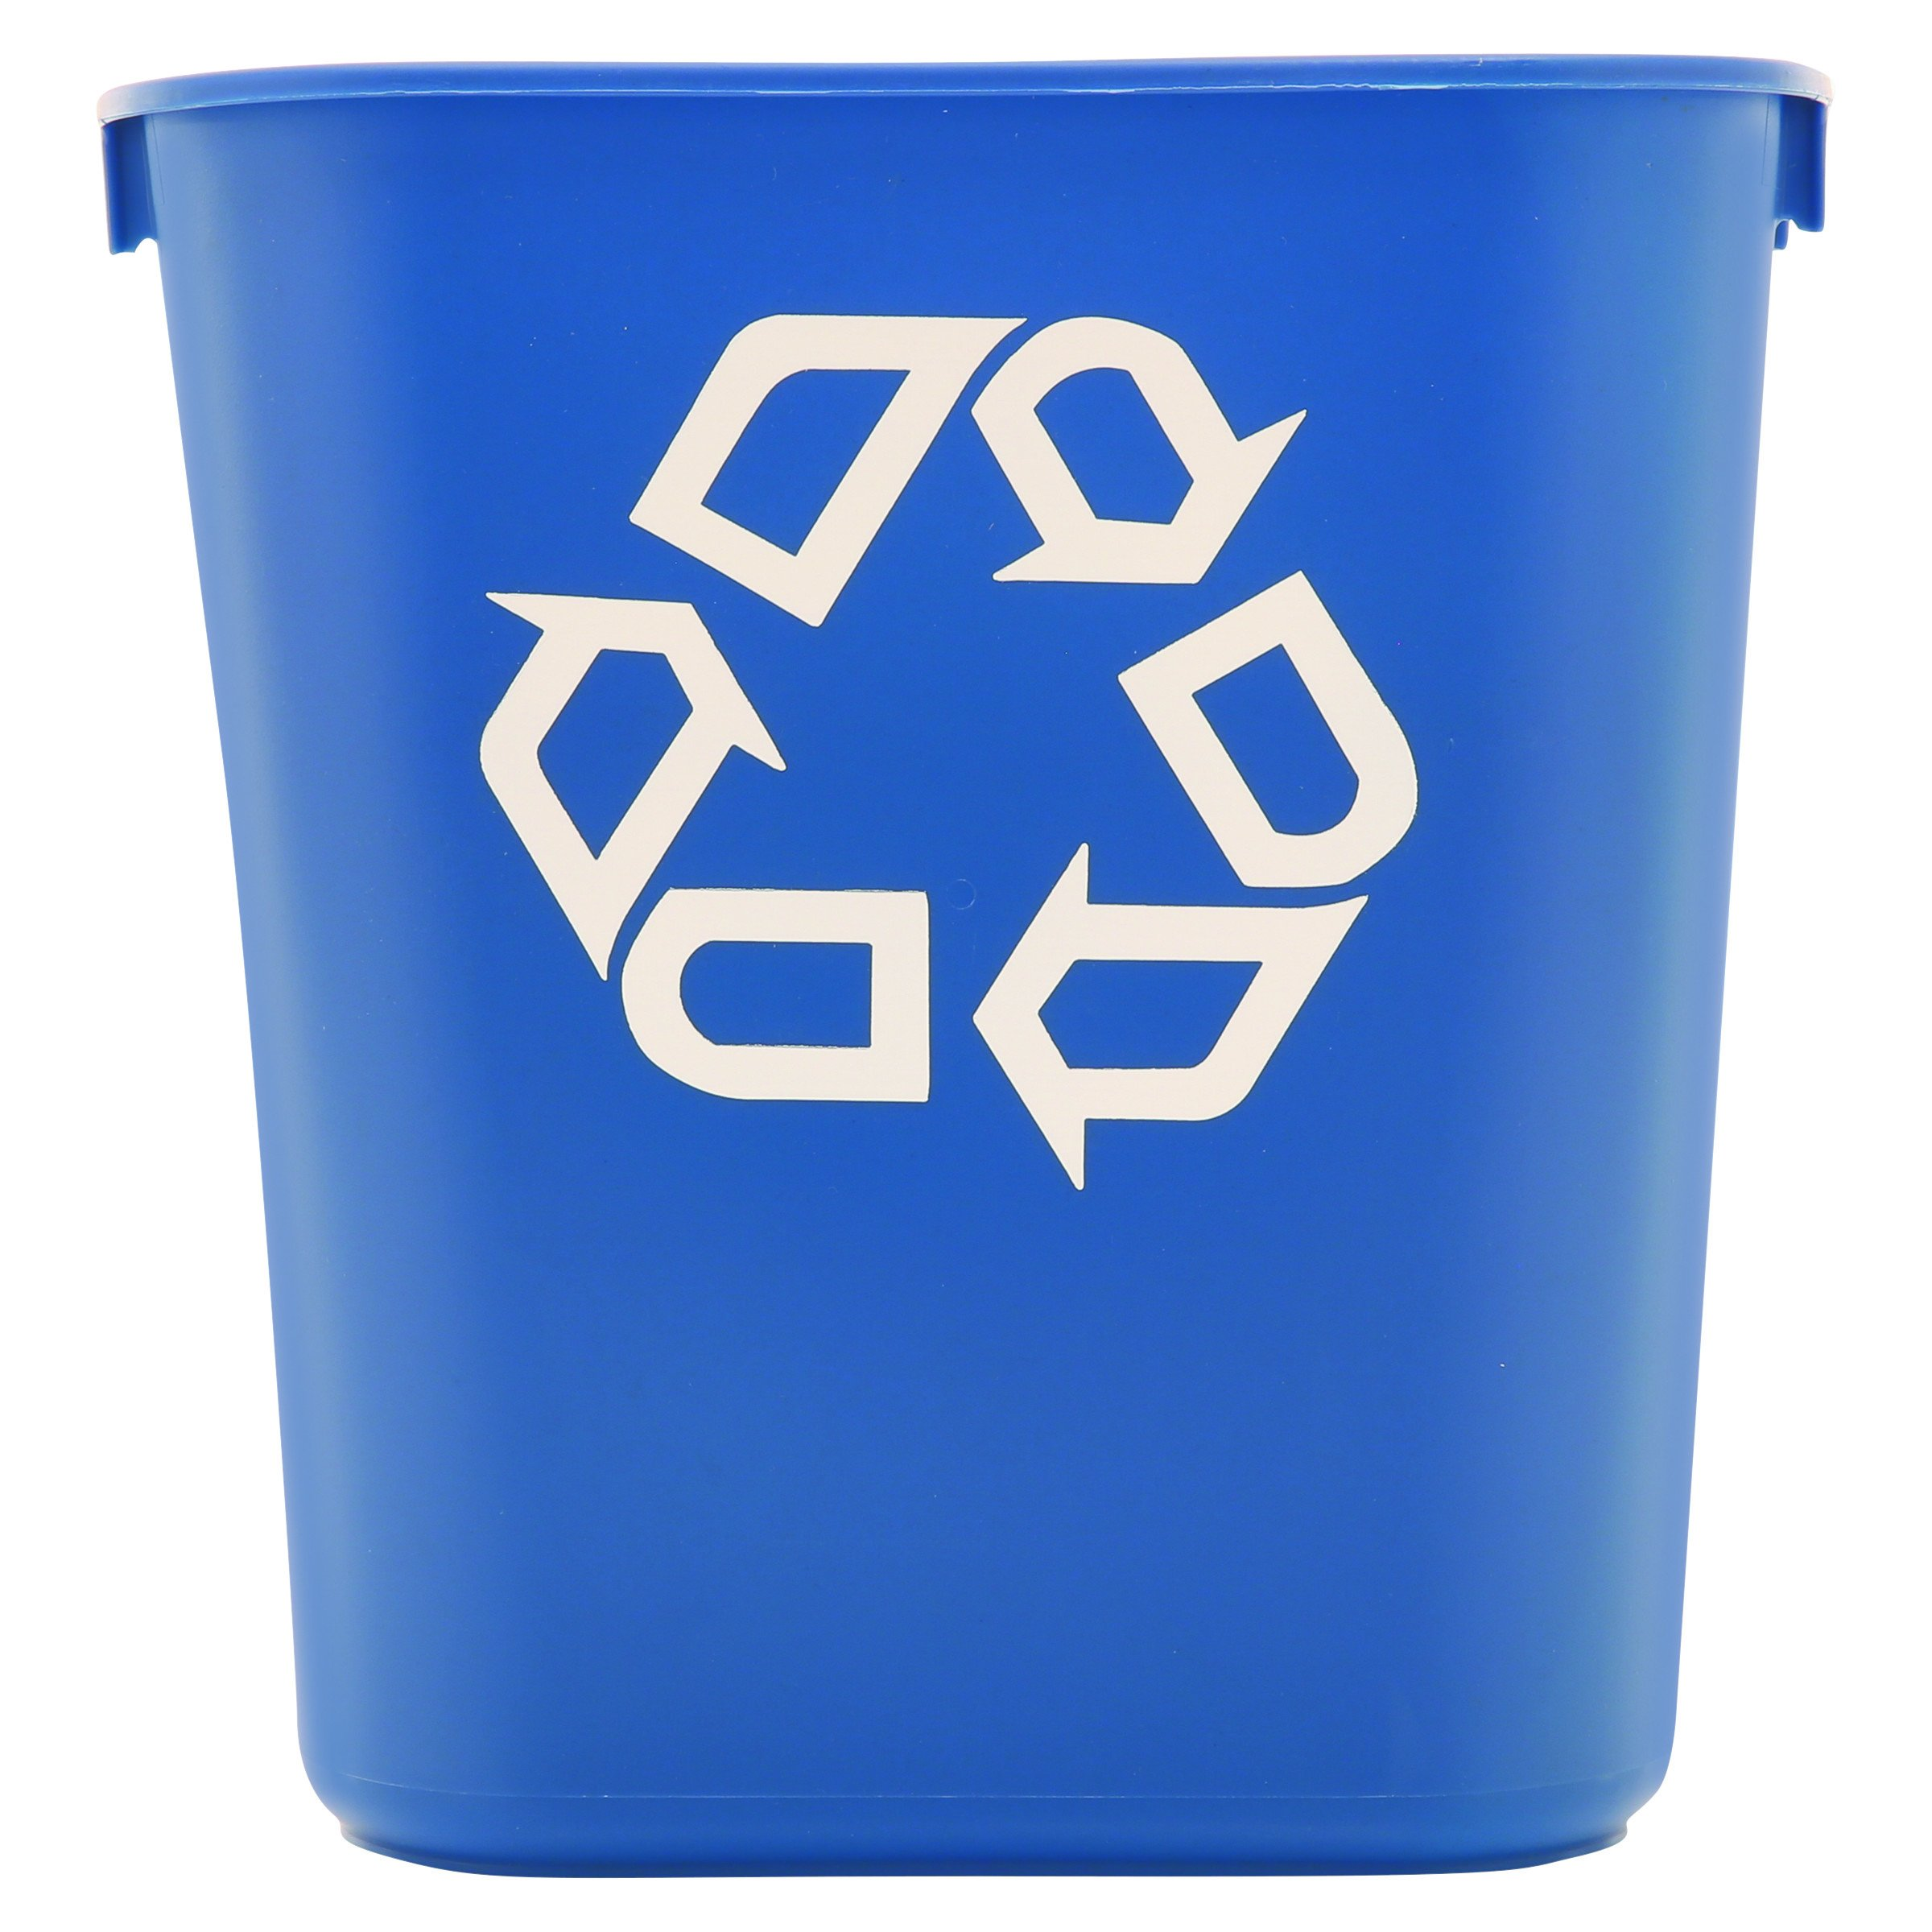 "Rubbermaid 2955-73 BLU 13-5/8 qt Capacity, 11.4"" Length x 8-1/4"" Width x 12-1/8"" Height, Blue Color, Small Deskside Recycling Container with Universal Recycle Symbol"